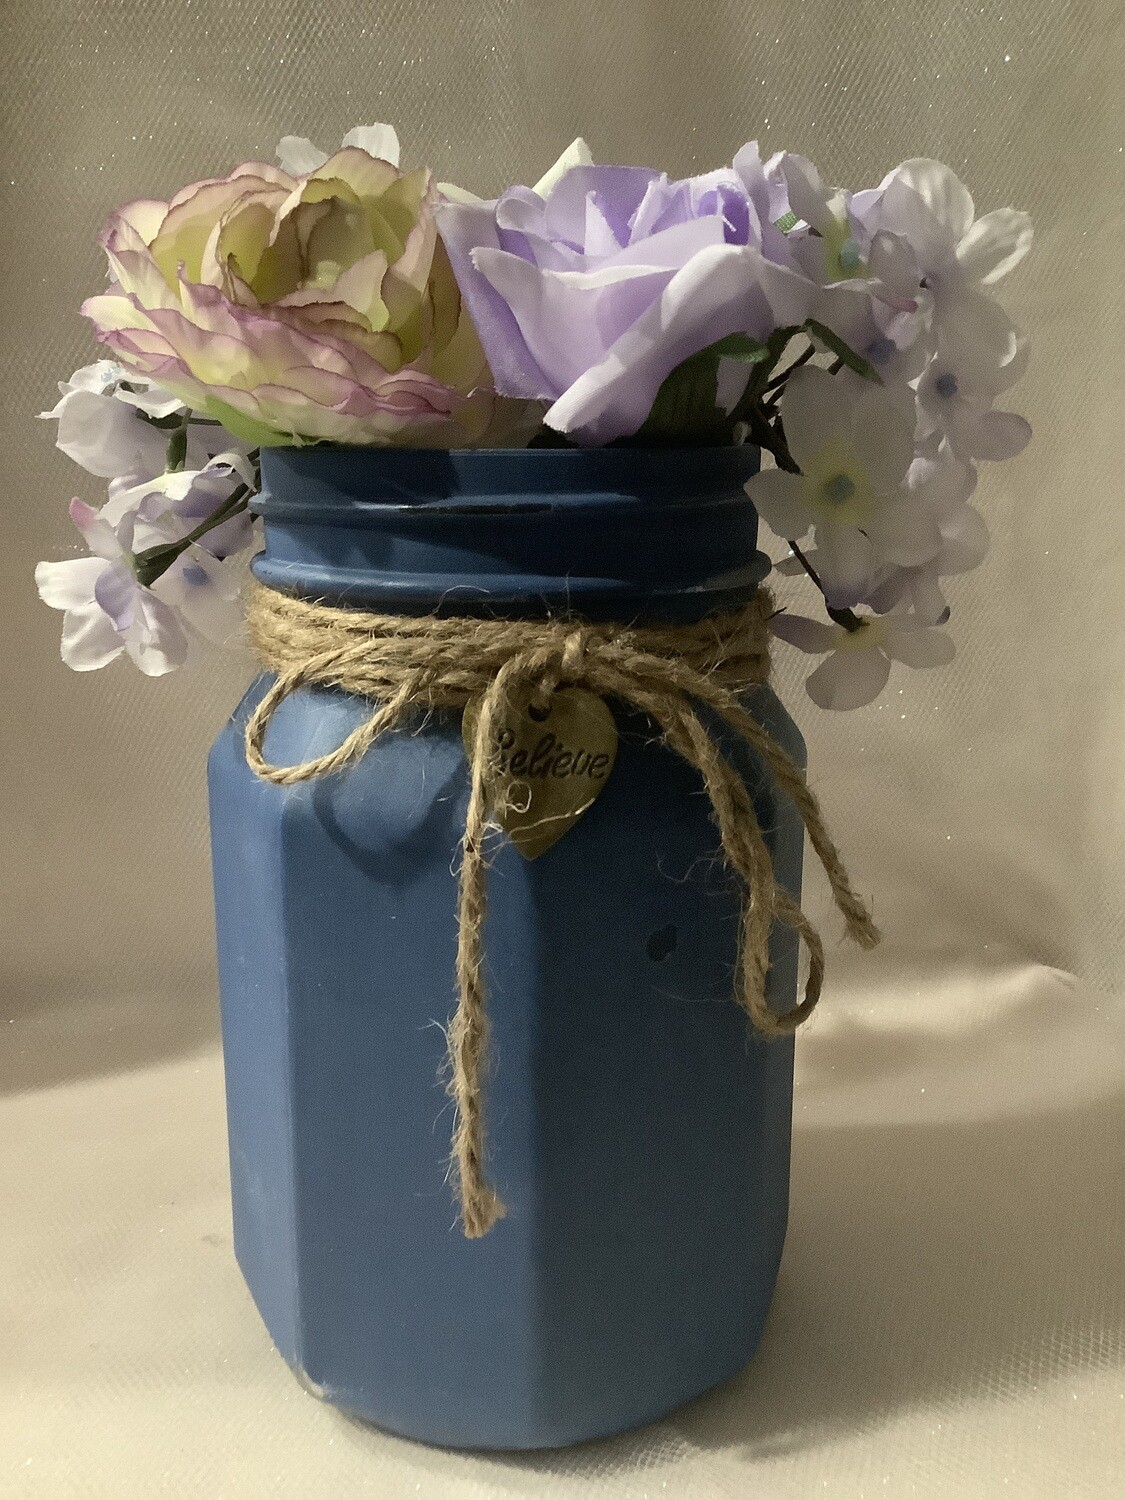 QUART BLUE JAR OCTOGAN WITH FLOWERS AND CHARM